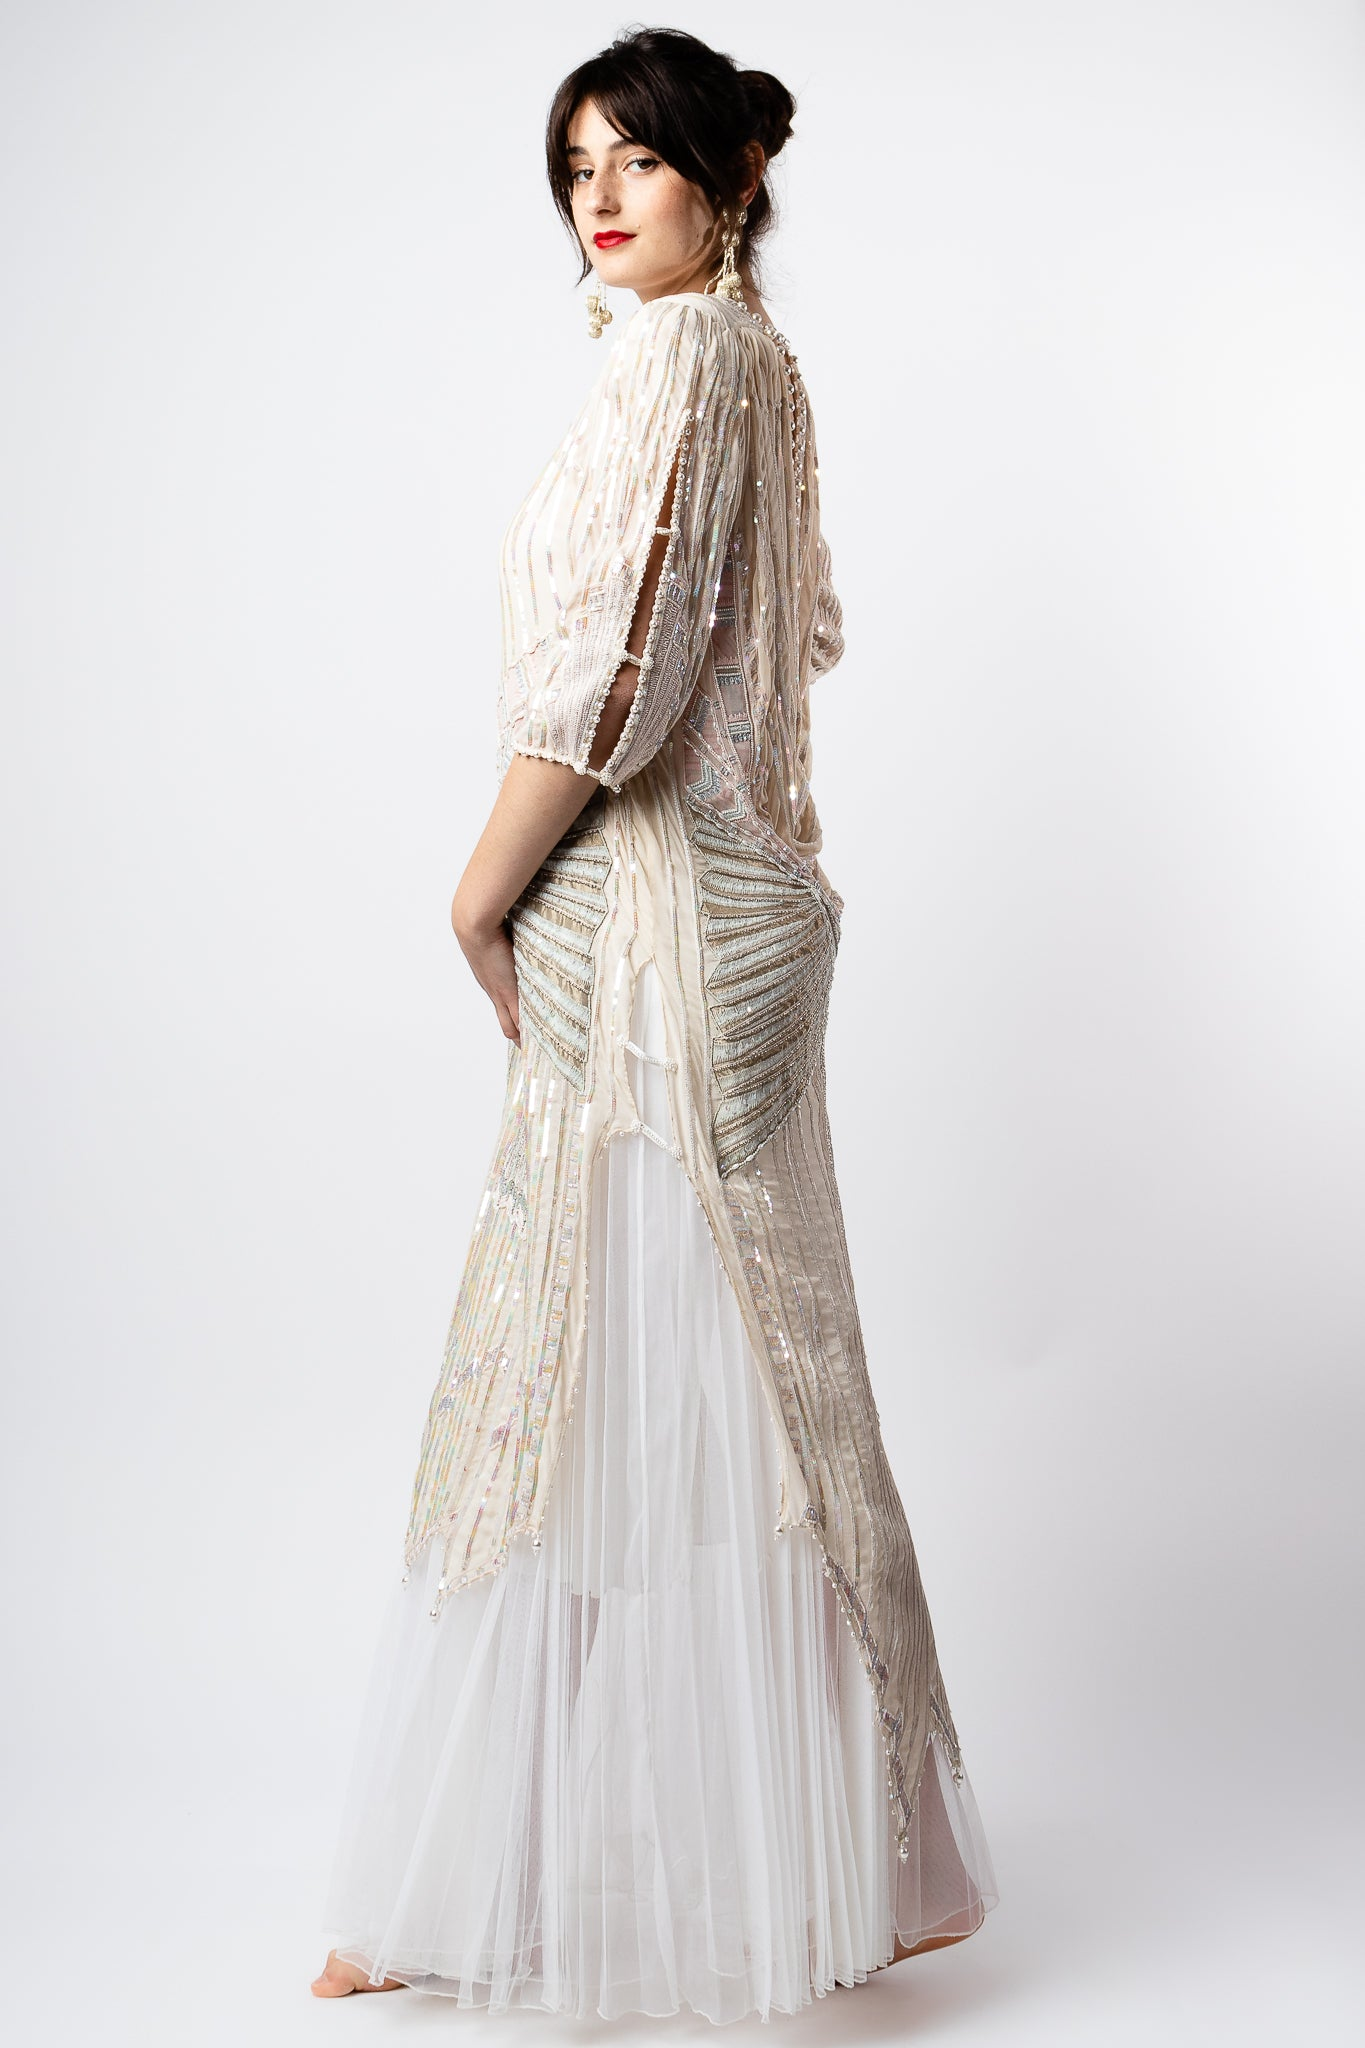 Recess Los Angeles Vintage Consignment Romy Reiner Zandra Rhodes Beaded Layered Gown